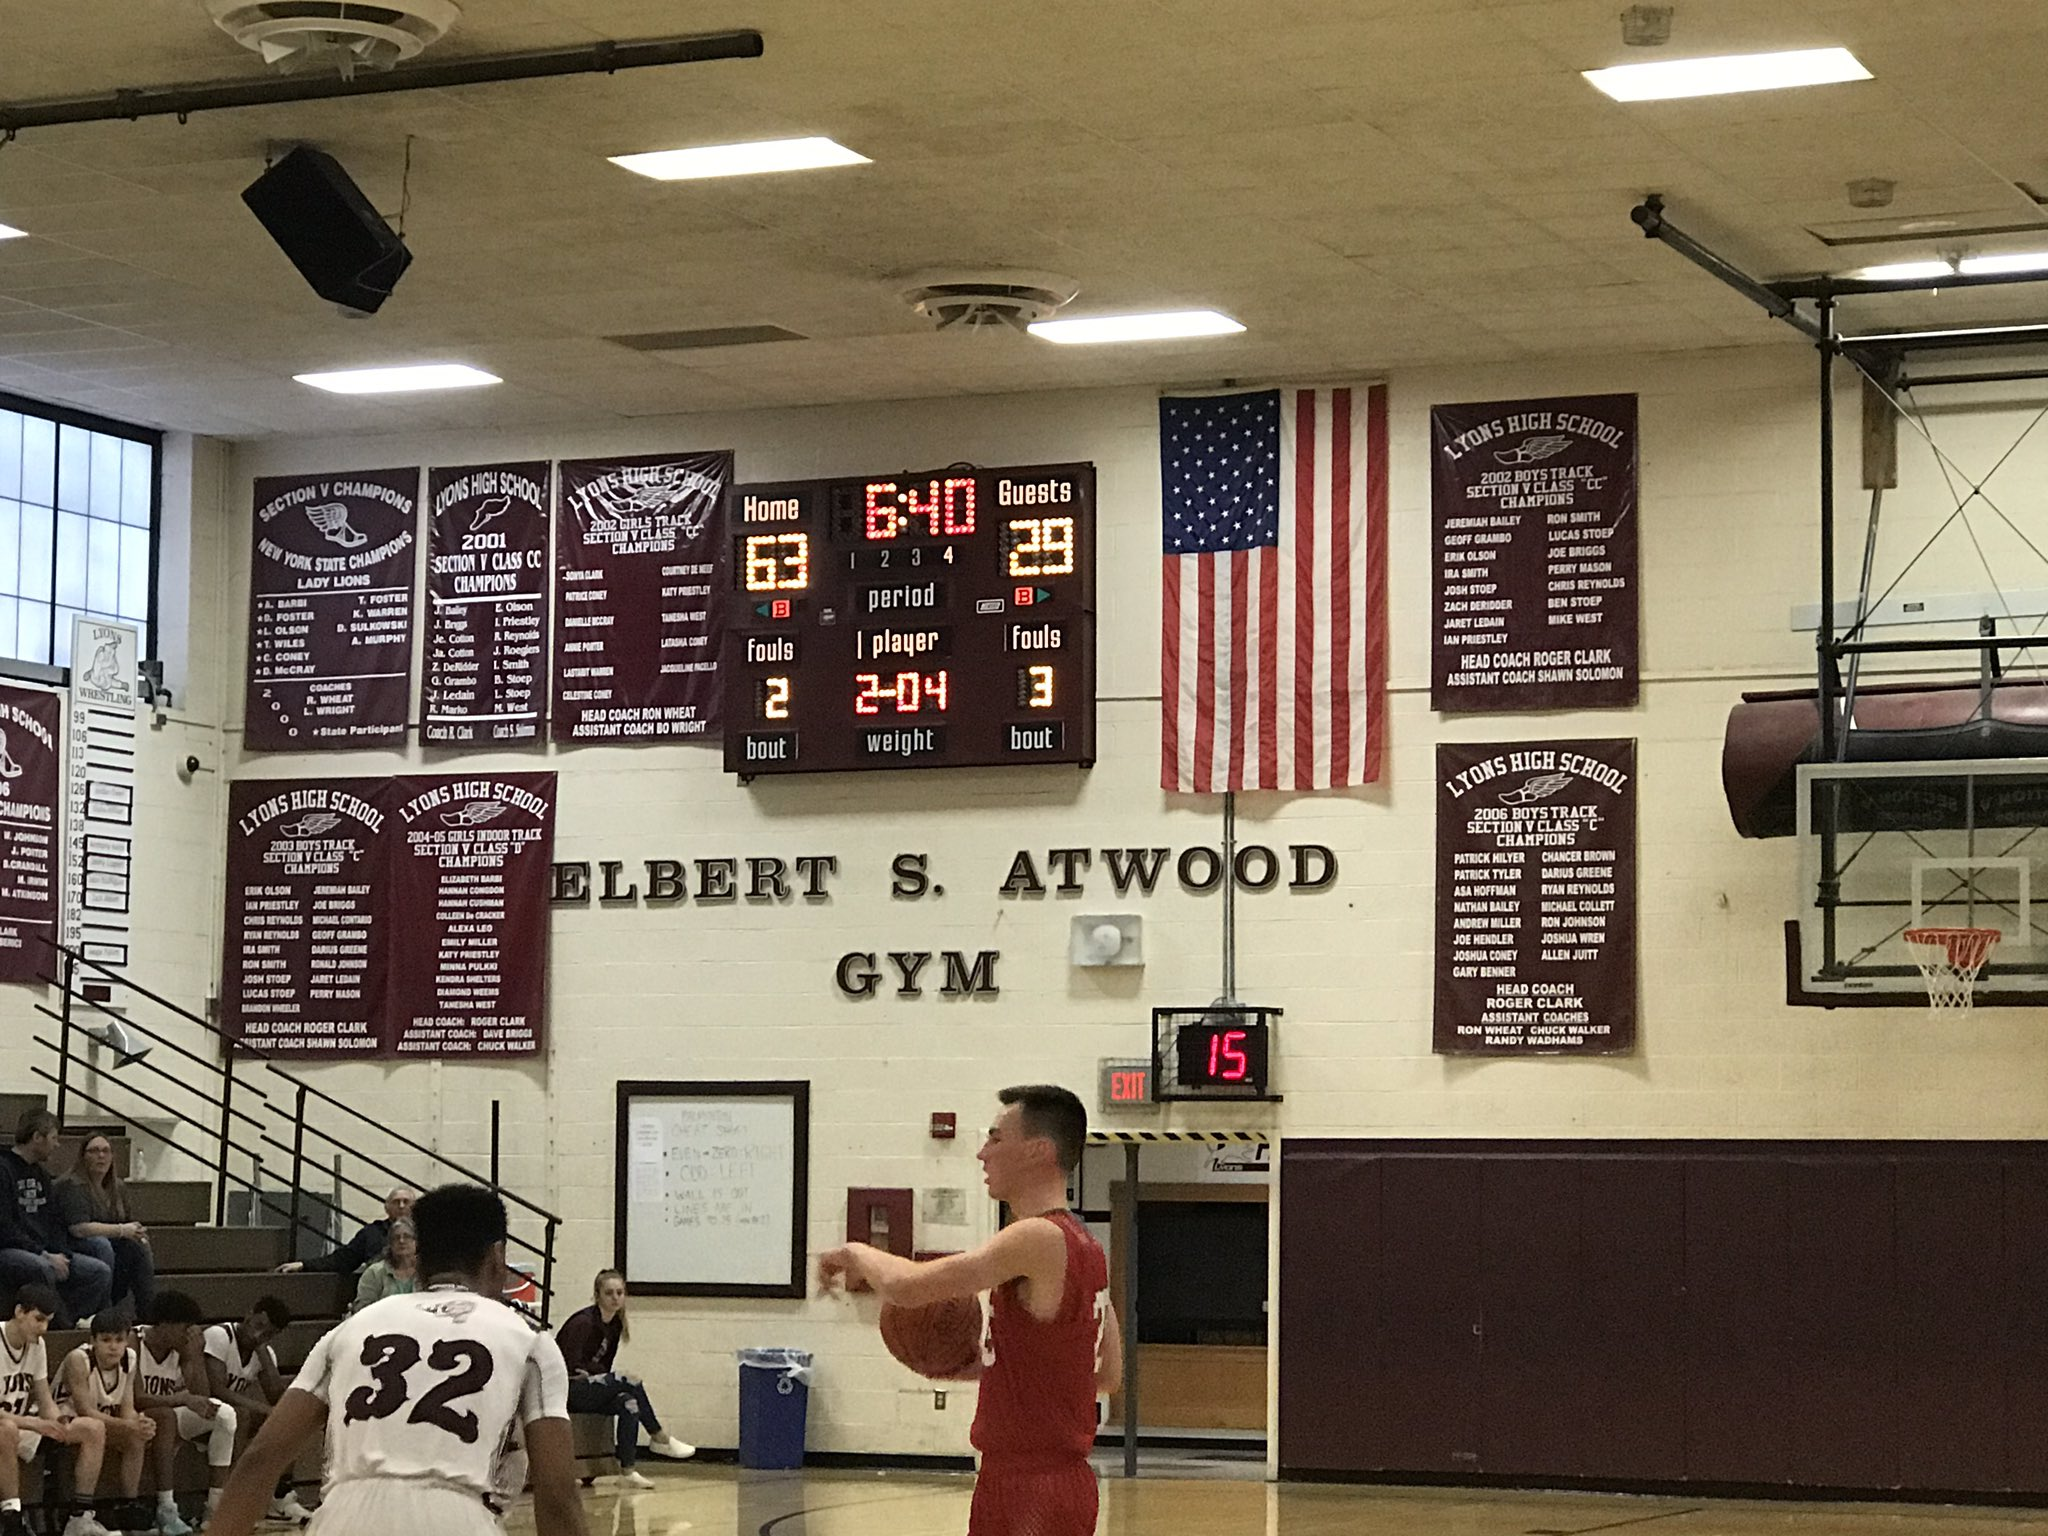 W-FL Saturday: Kemp and Walker lead Lyons boys to fourth consecutive victory; Gananda boys pound East Rochester